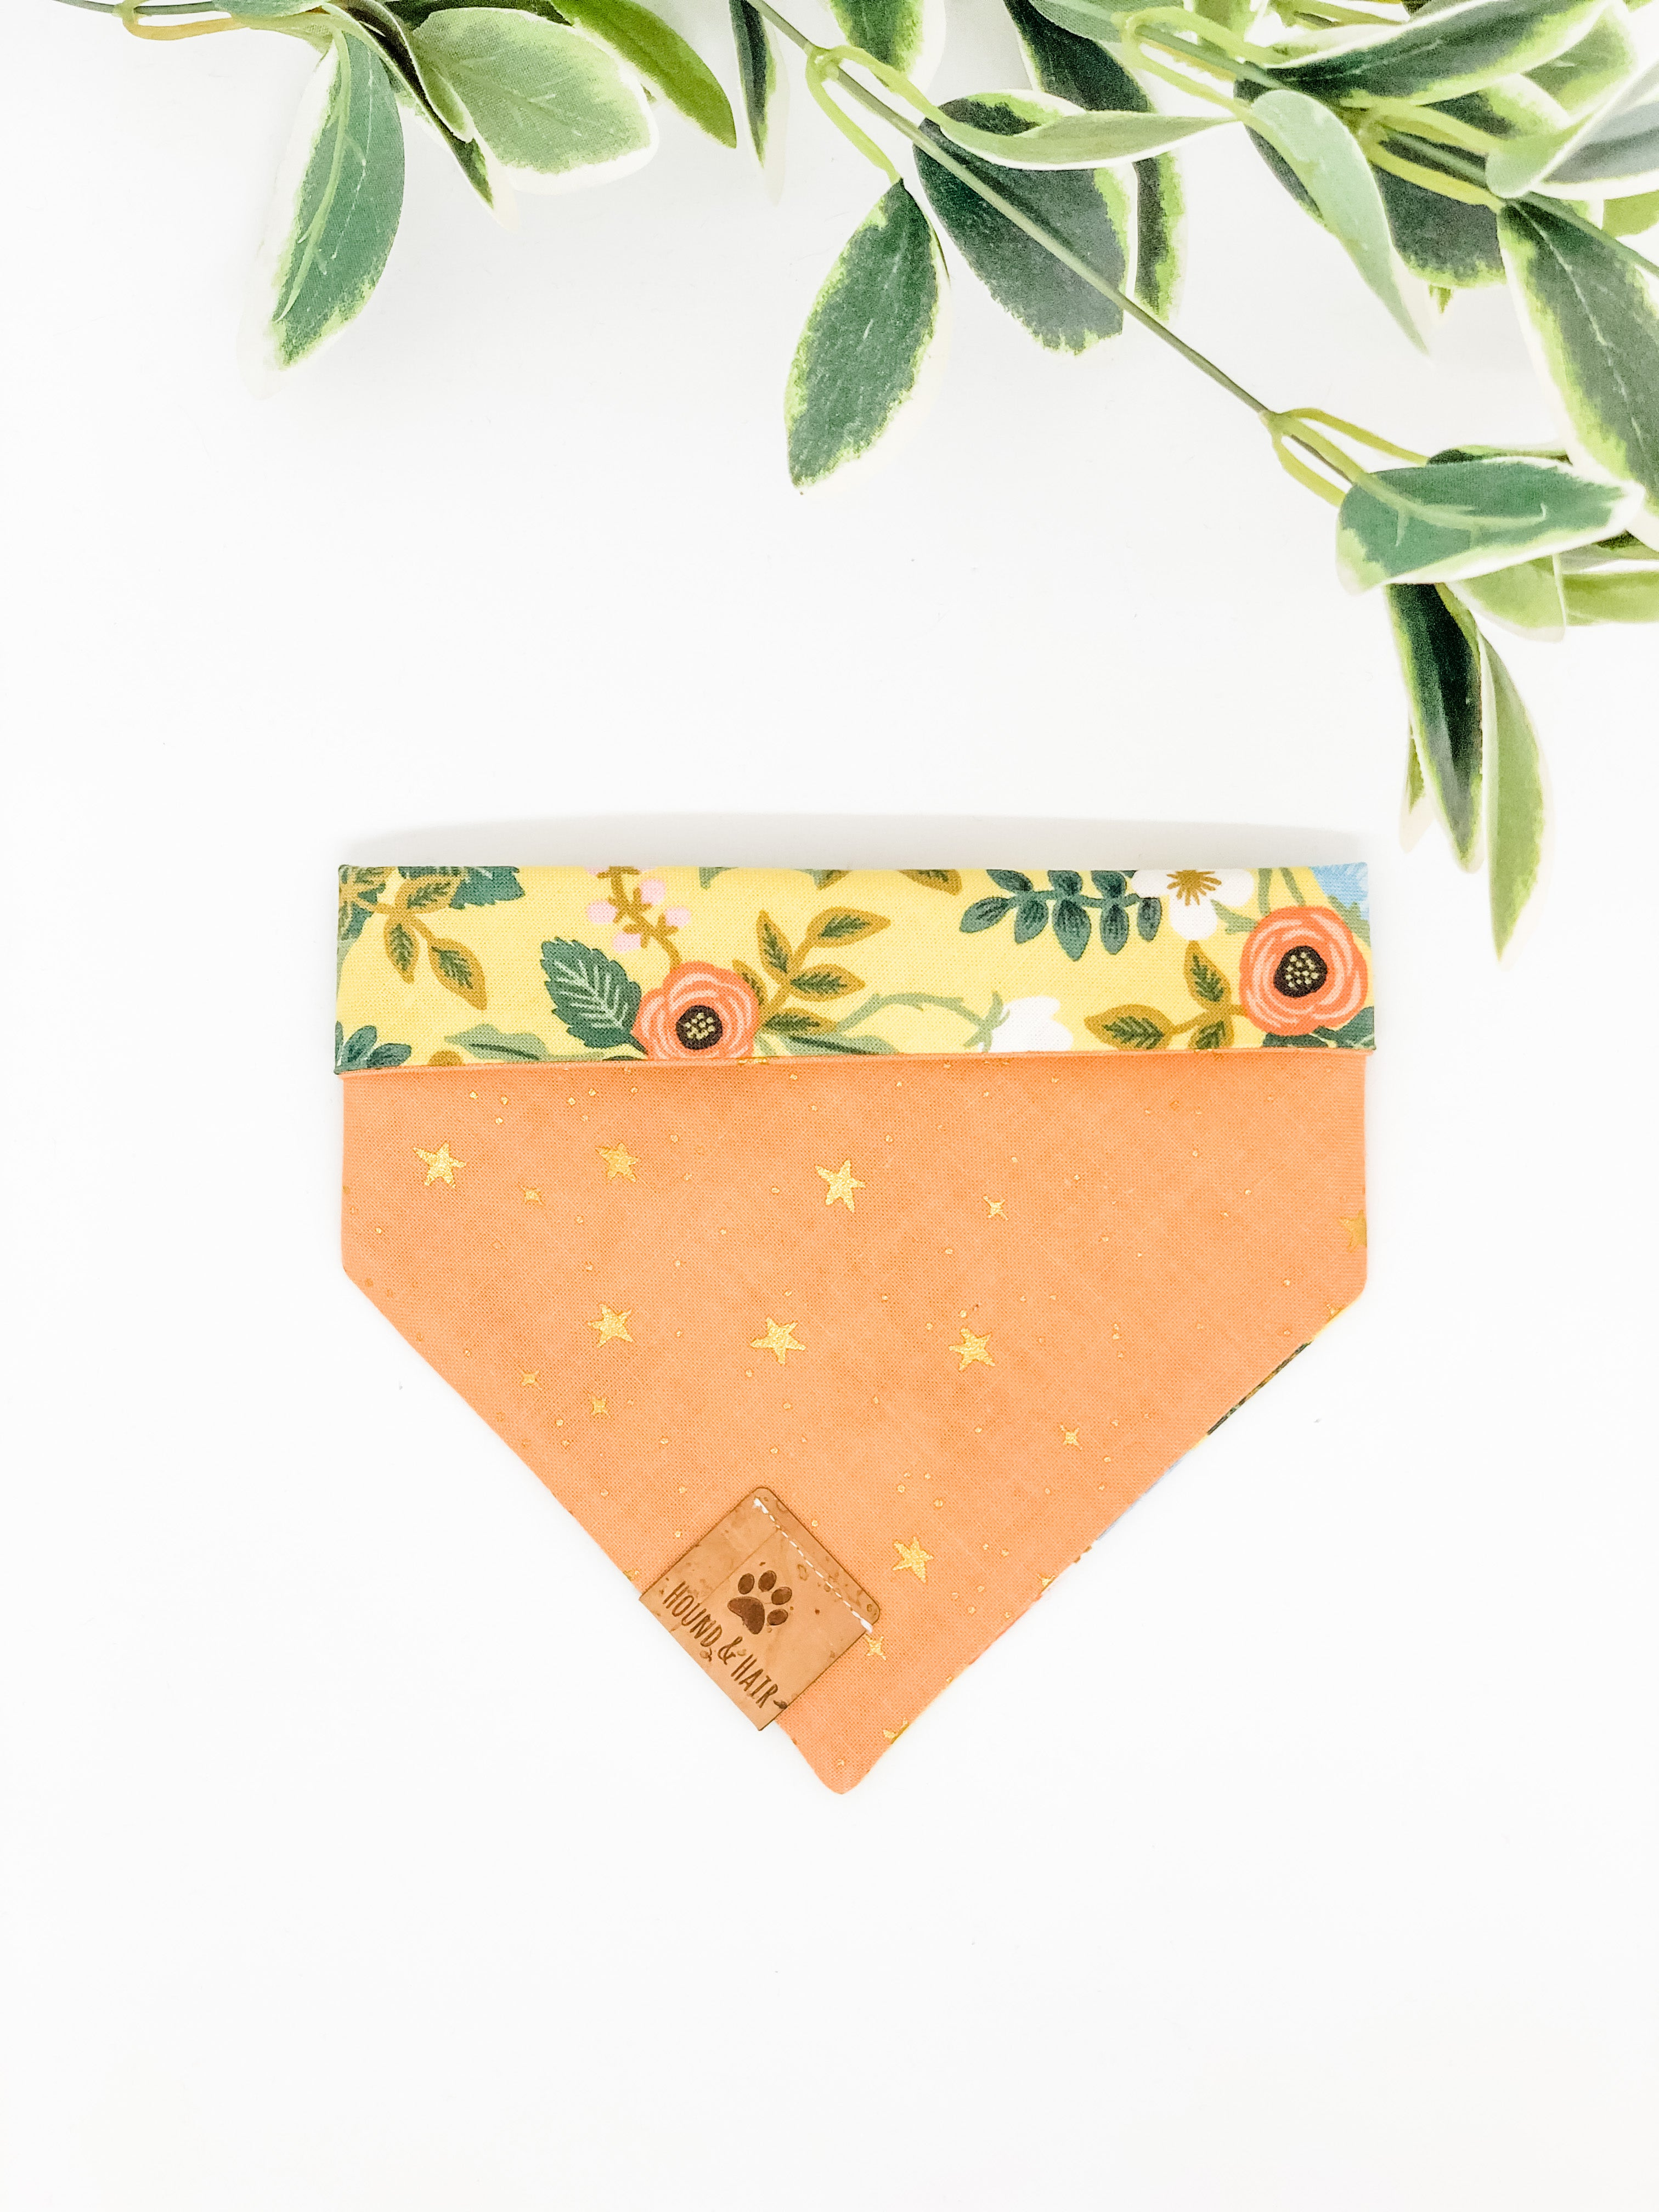 Reversible Snap on Bandana | Wild Bloom 2.0 x Peach Stars